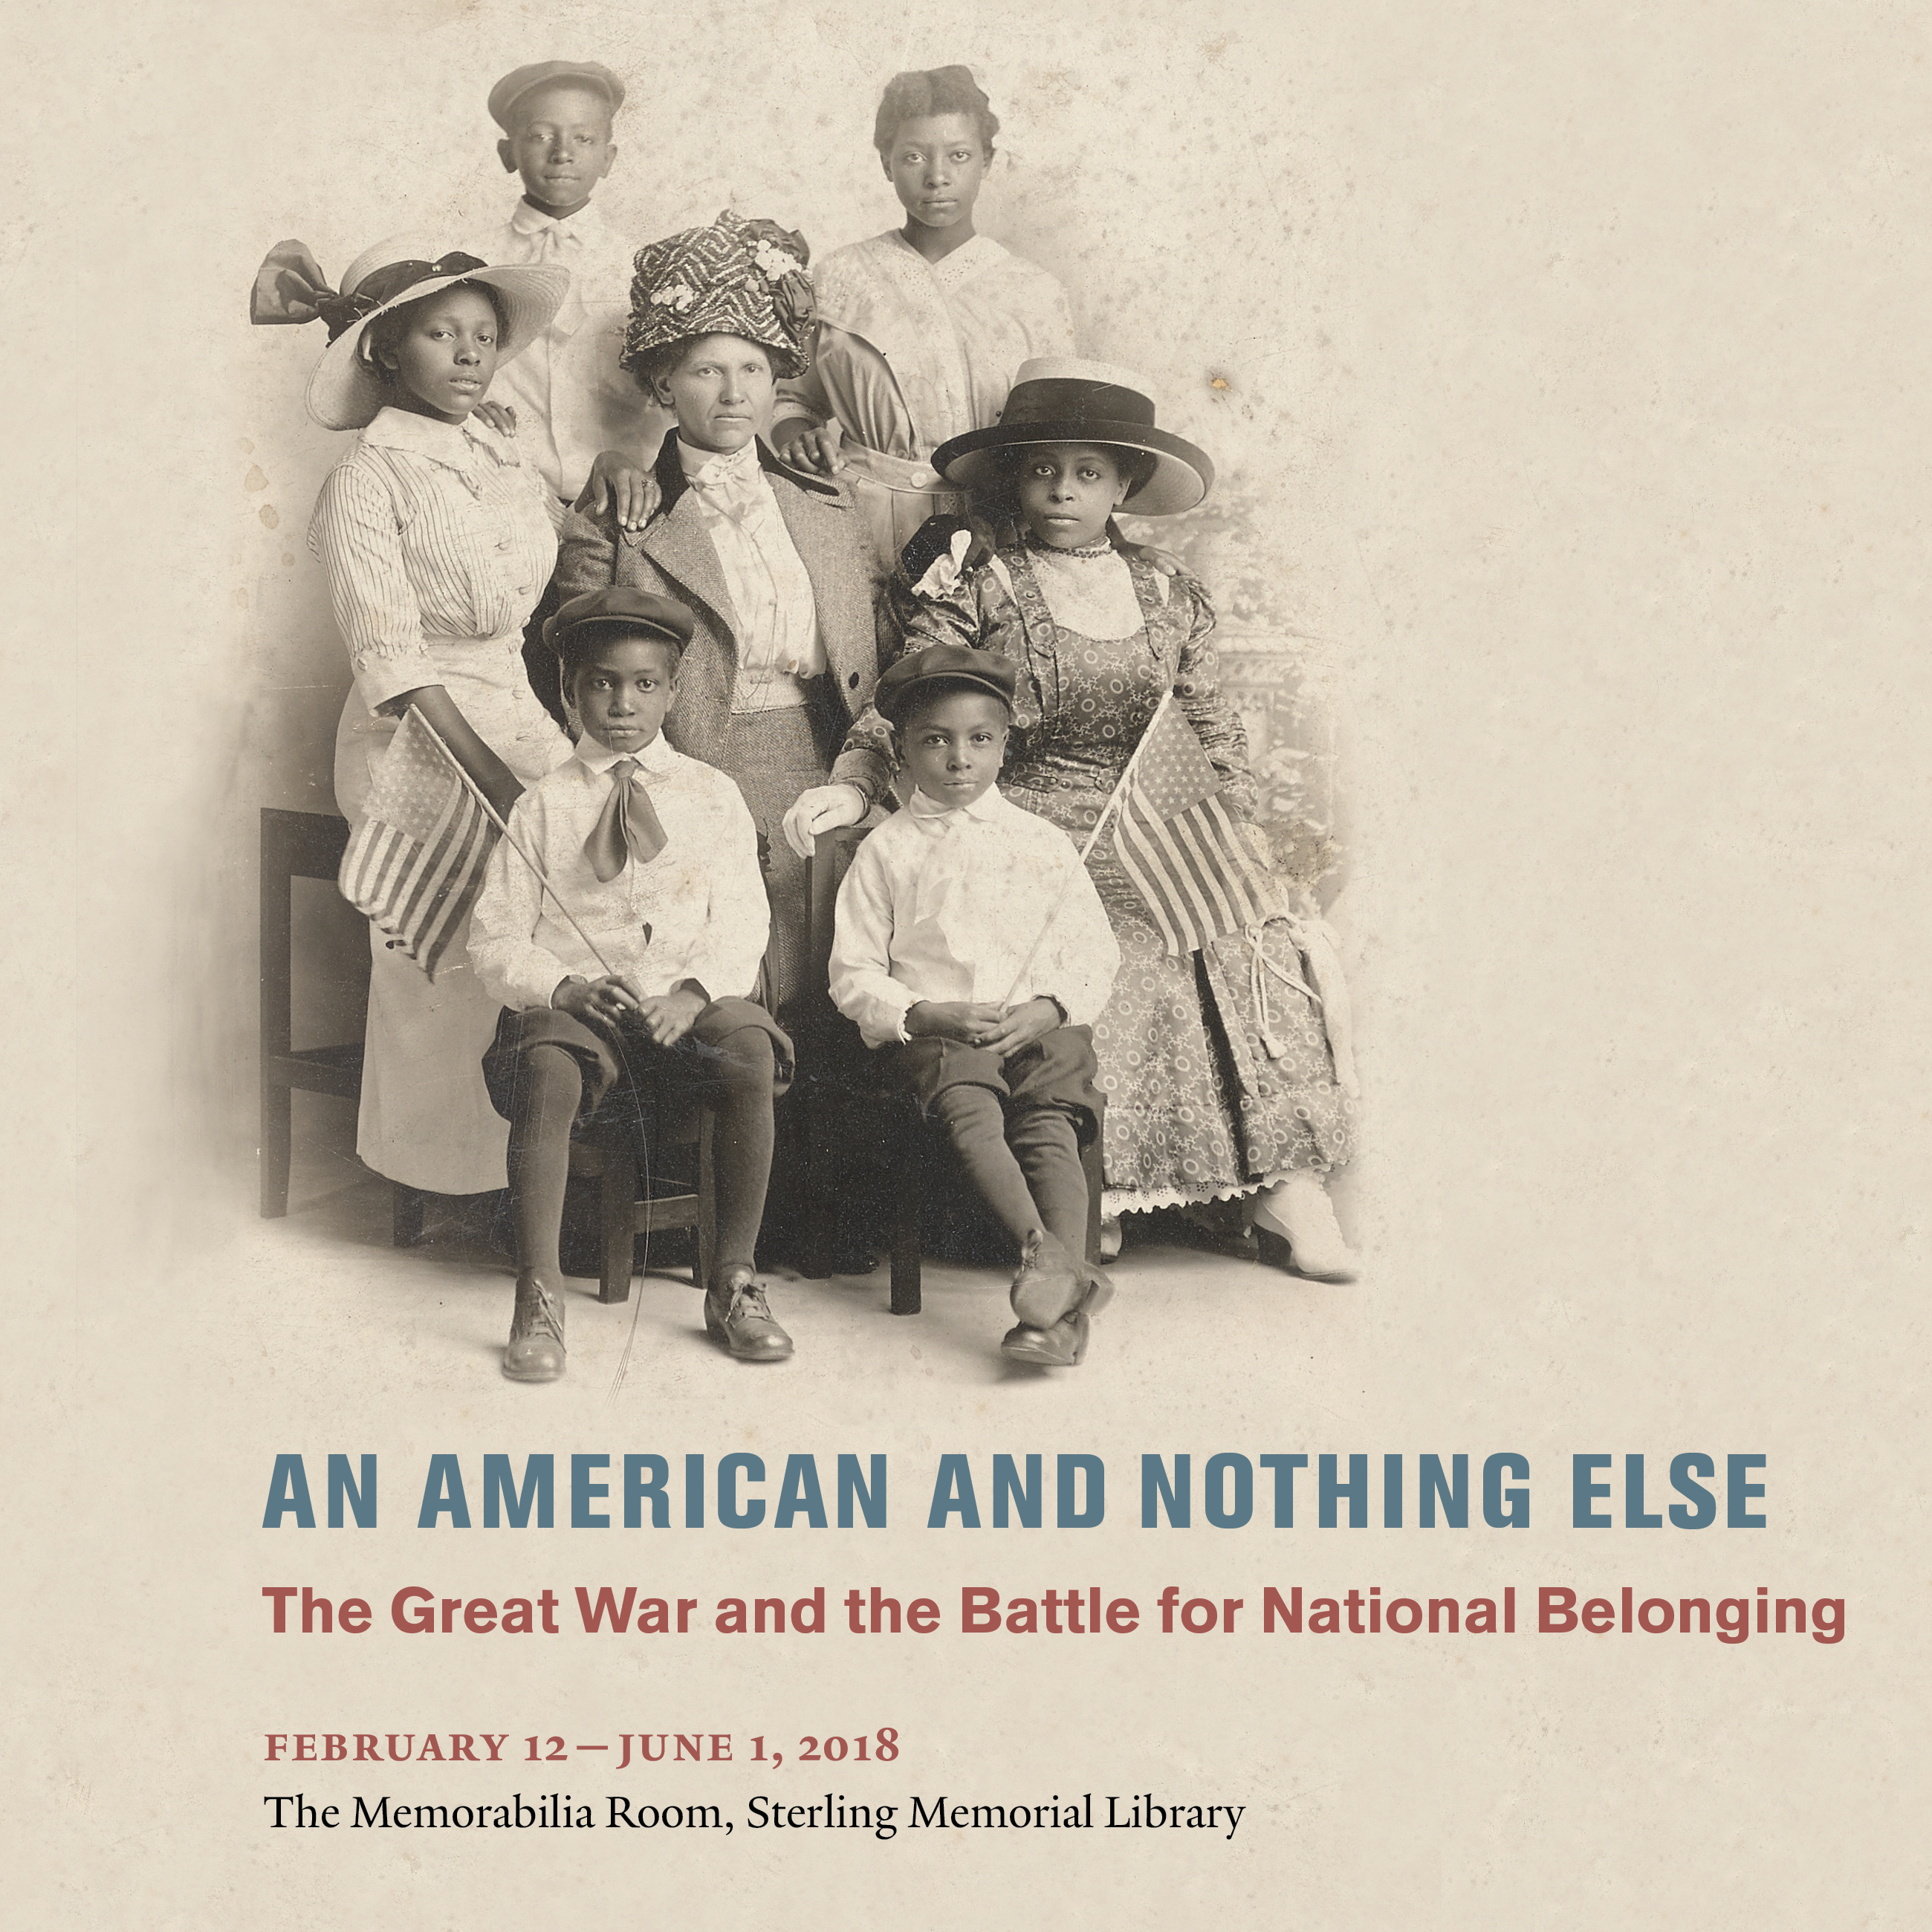 An American and Nothing Else publicity image